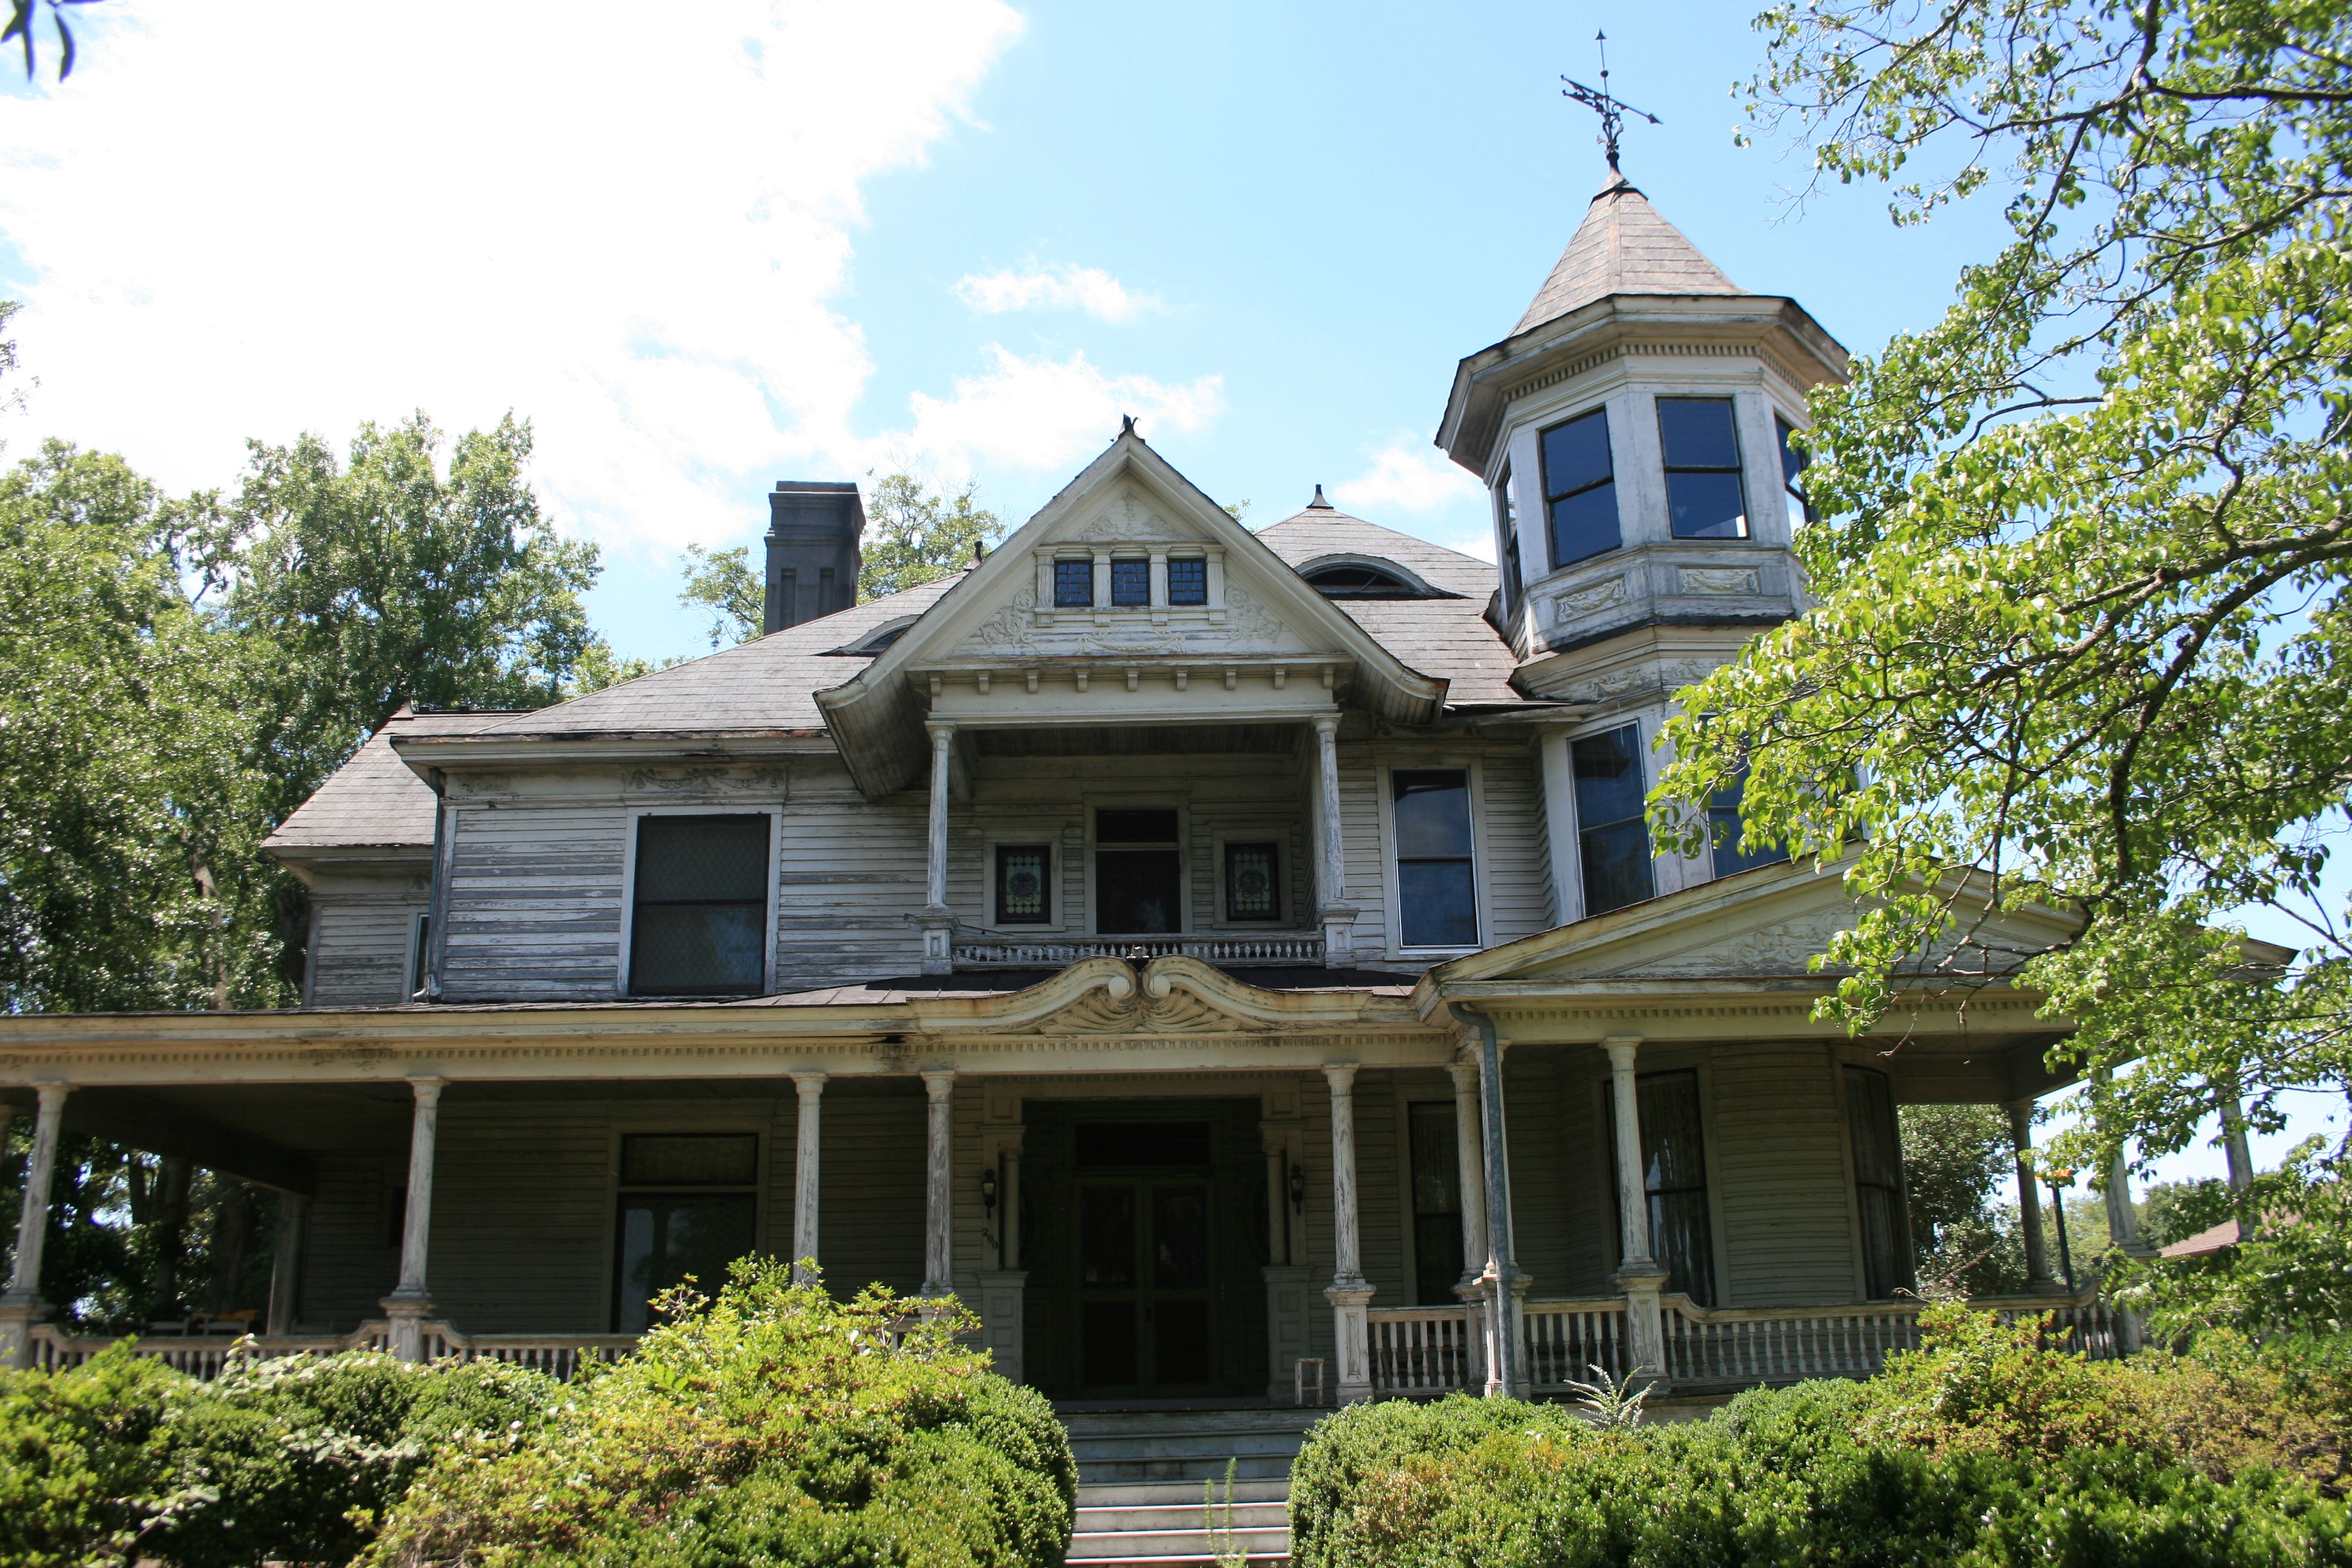 A really cool house in Abbeville, SC   My Photos   Pinterest